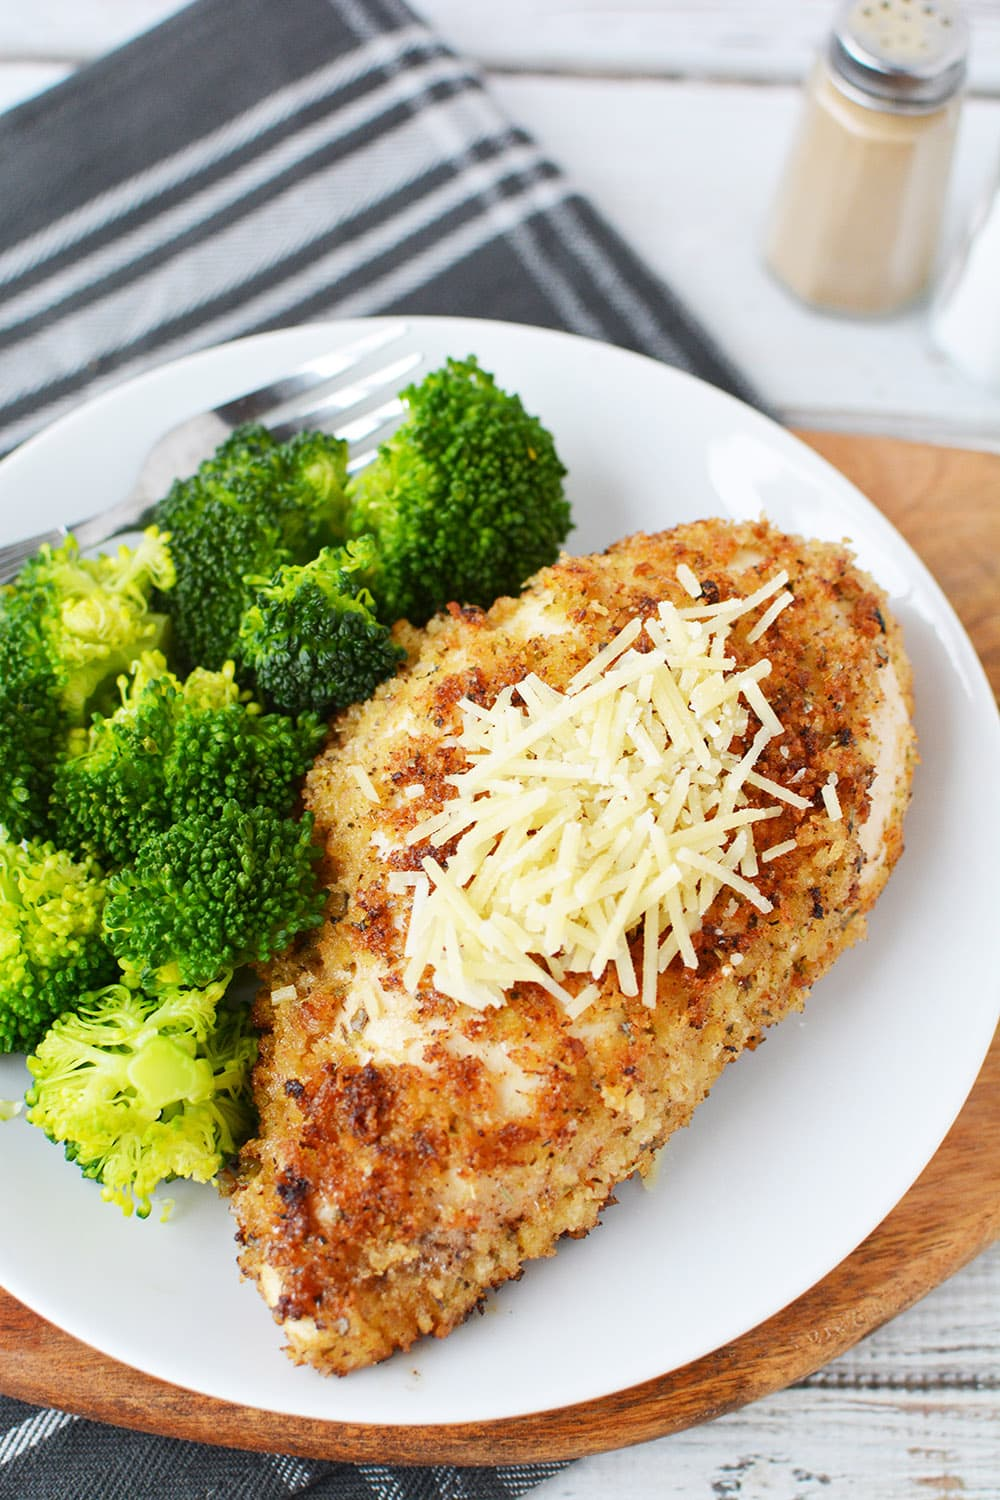 Plate of crispy chicken topped with parmesan and broccoli